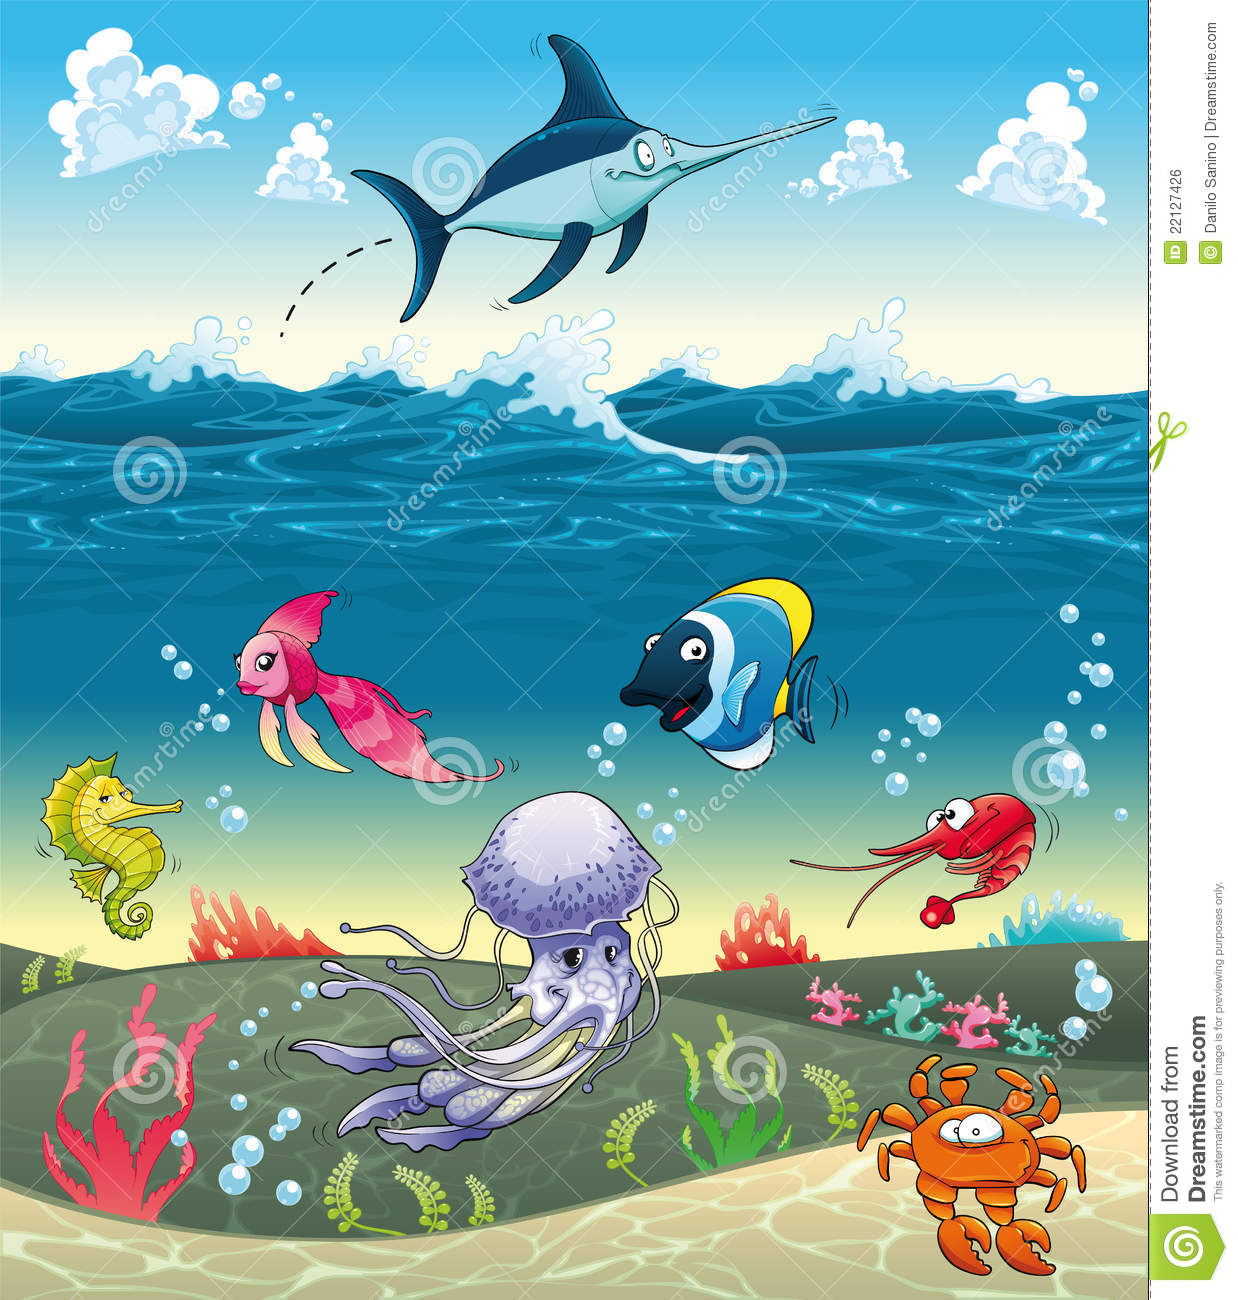 Cartoon Fish Stock Photos, Images, & Pictures.